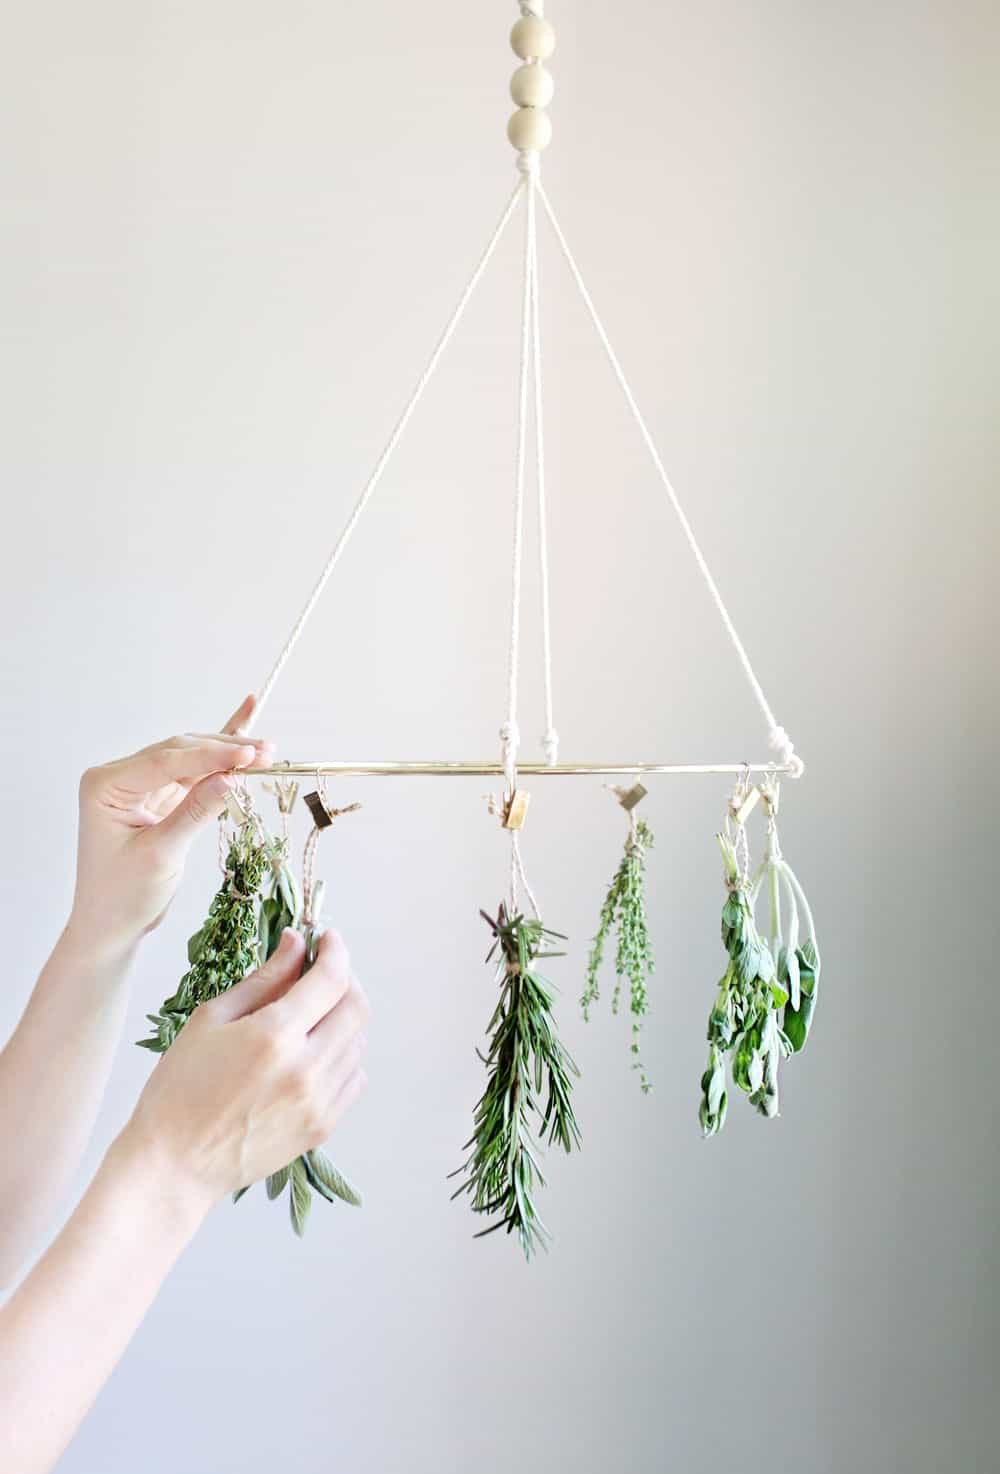 A drying rack that's stylish, functional, and a serious money saver the cost of store-bought dried herbs